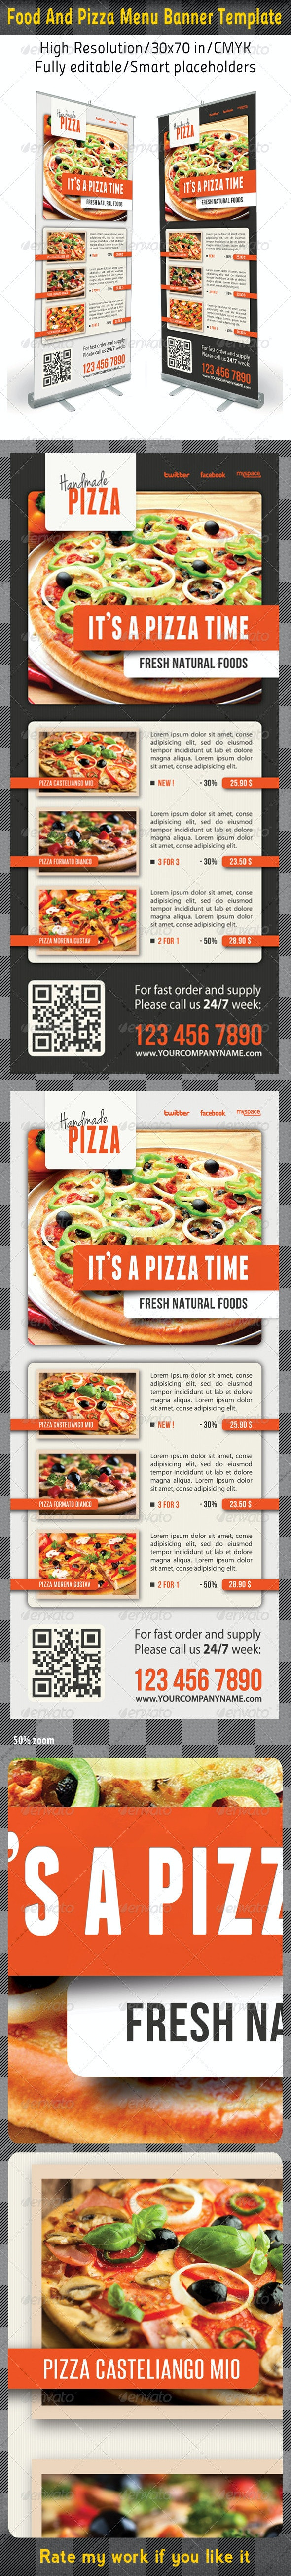 Food And Pizza Menu Banner Template 08 - Signage Print Templates